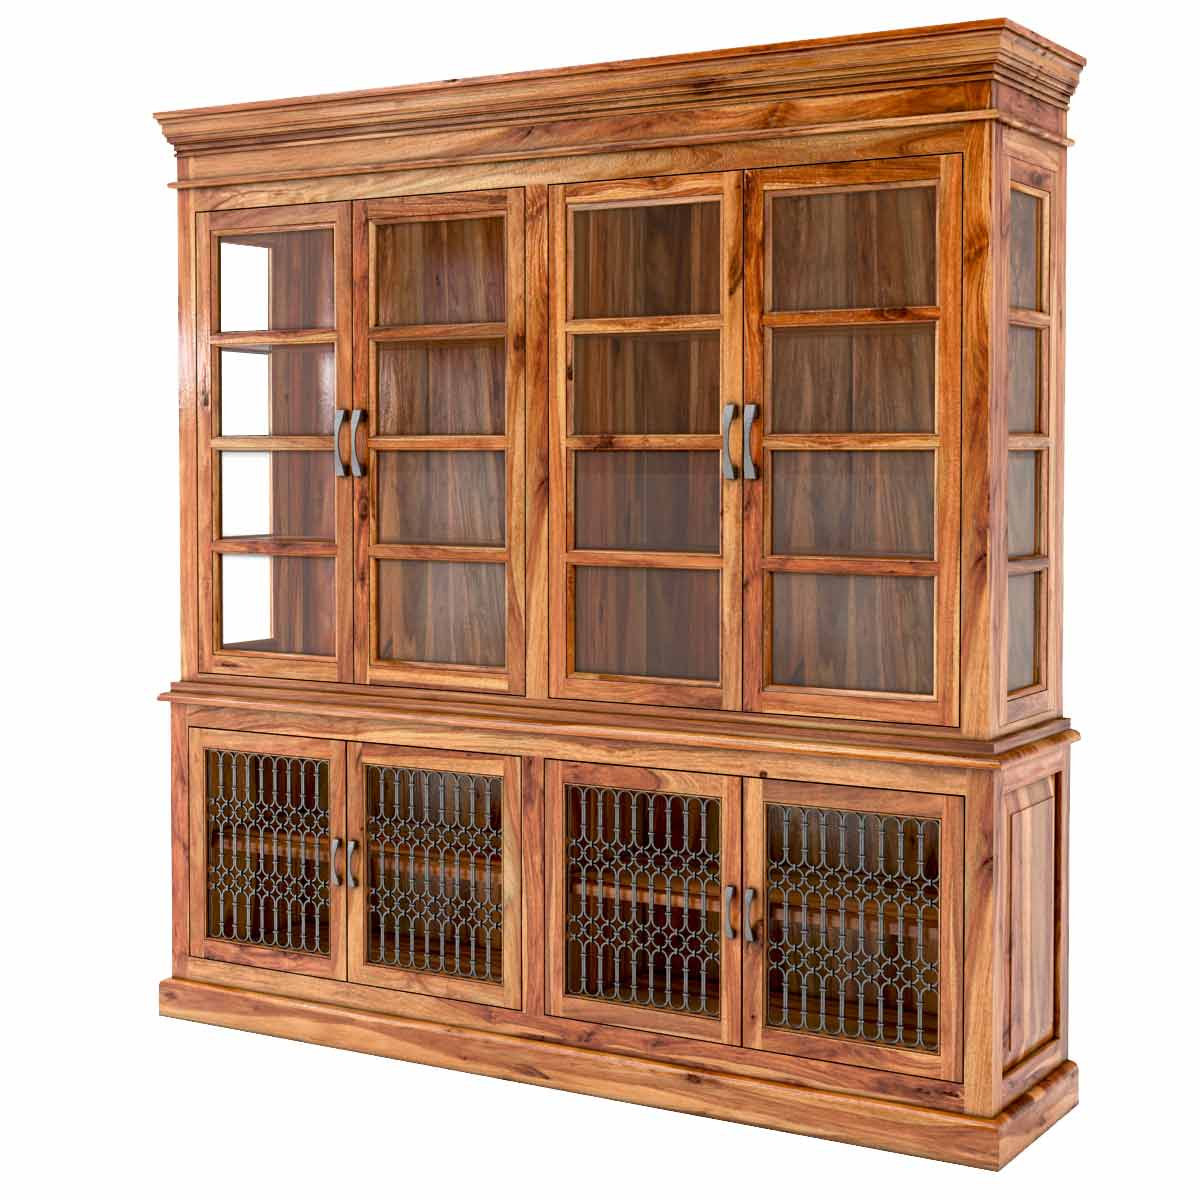 San Francisco Rustic Solid Wood Dining Room Hutch